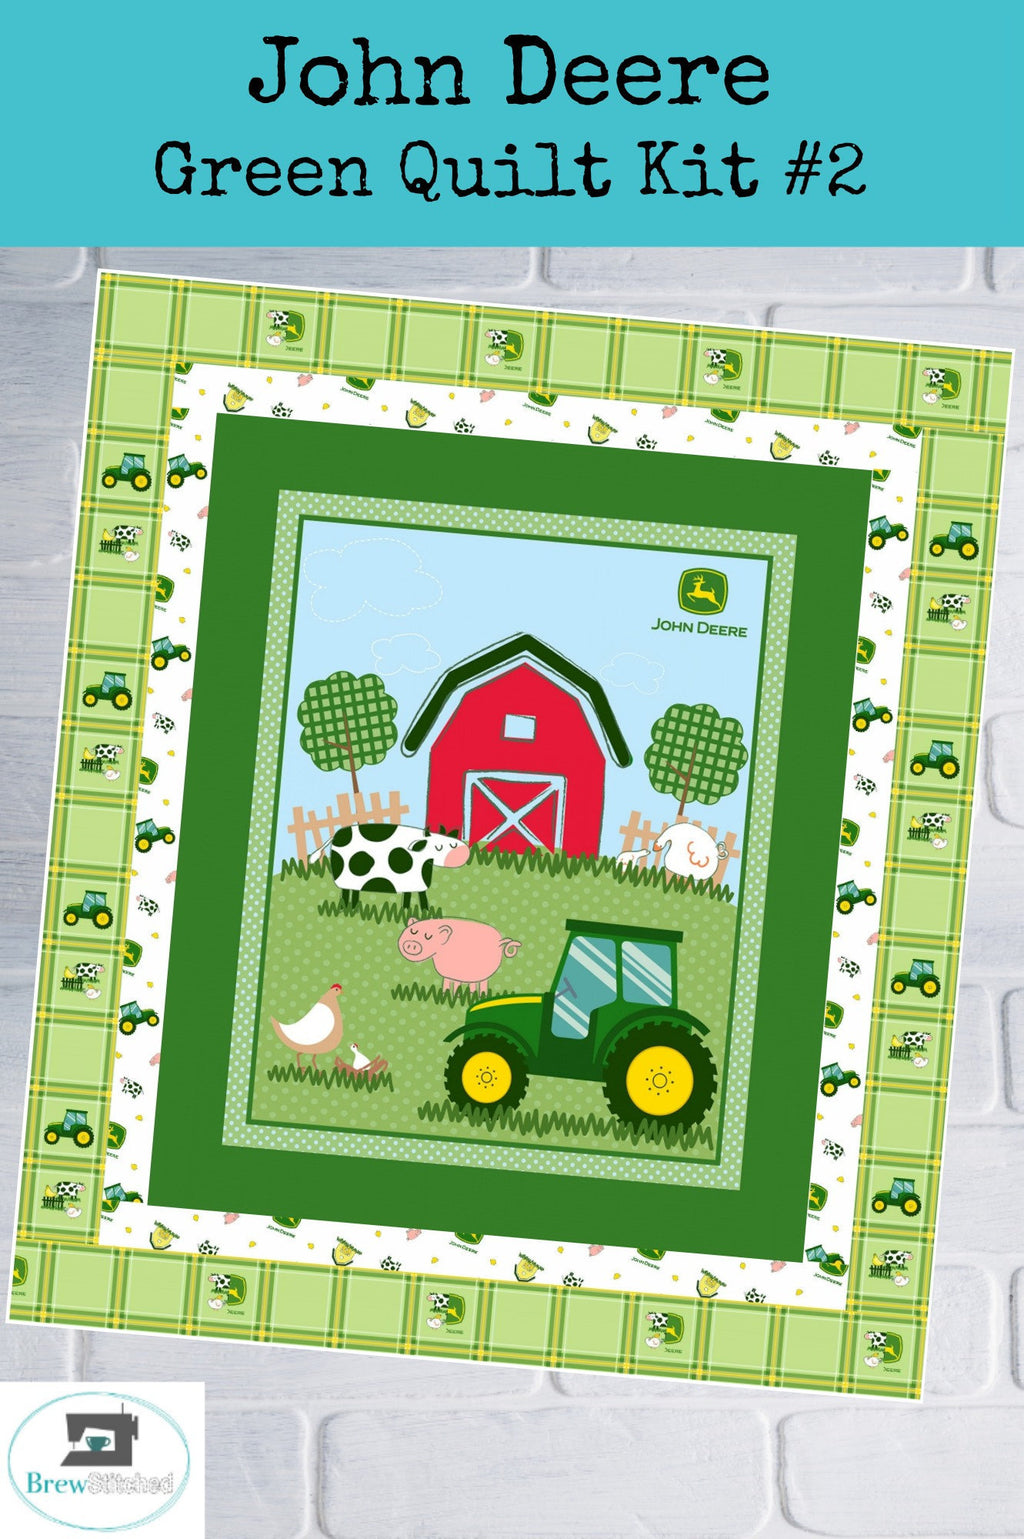 John Deere Green Quilt Kit #2 measures 52 x 59 - brewstitched.com